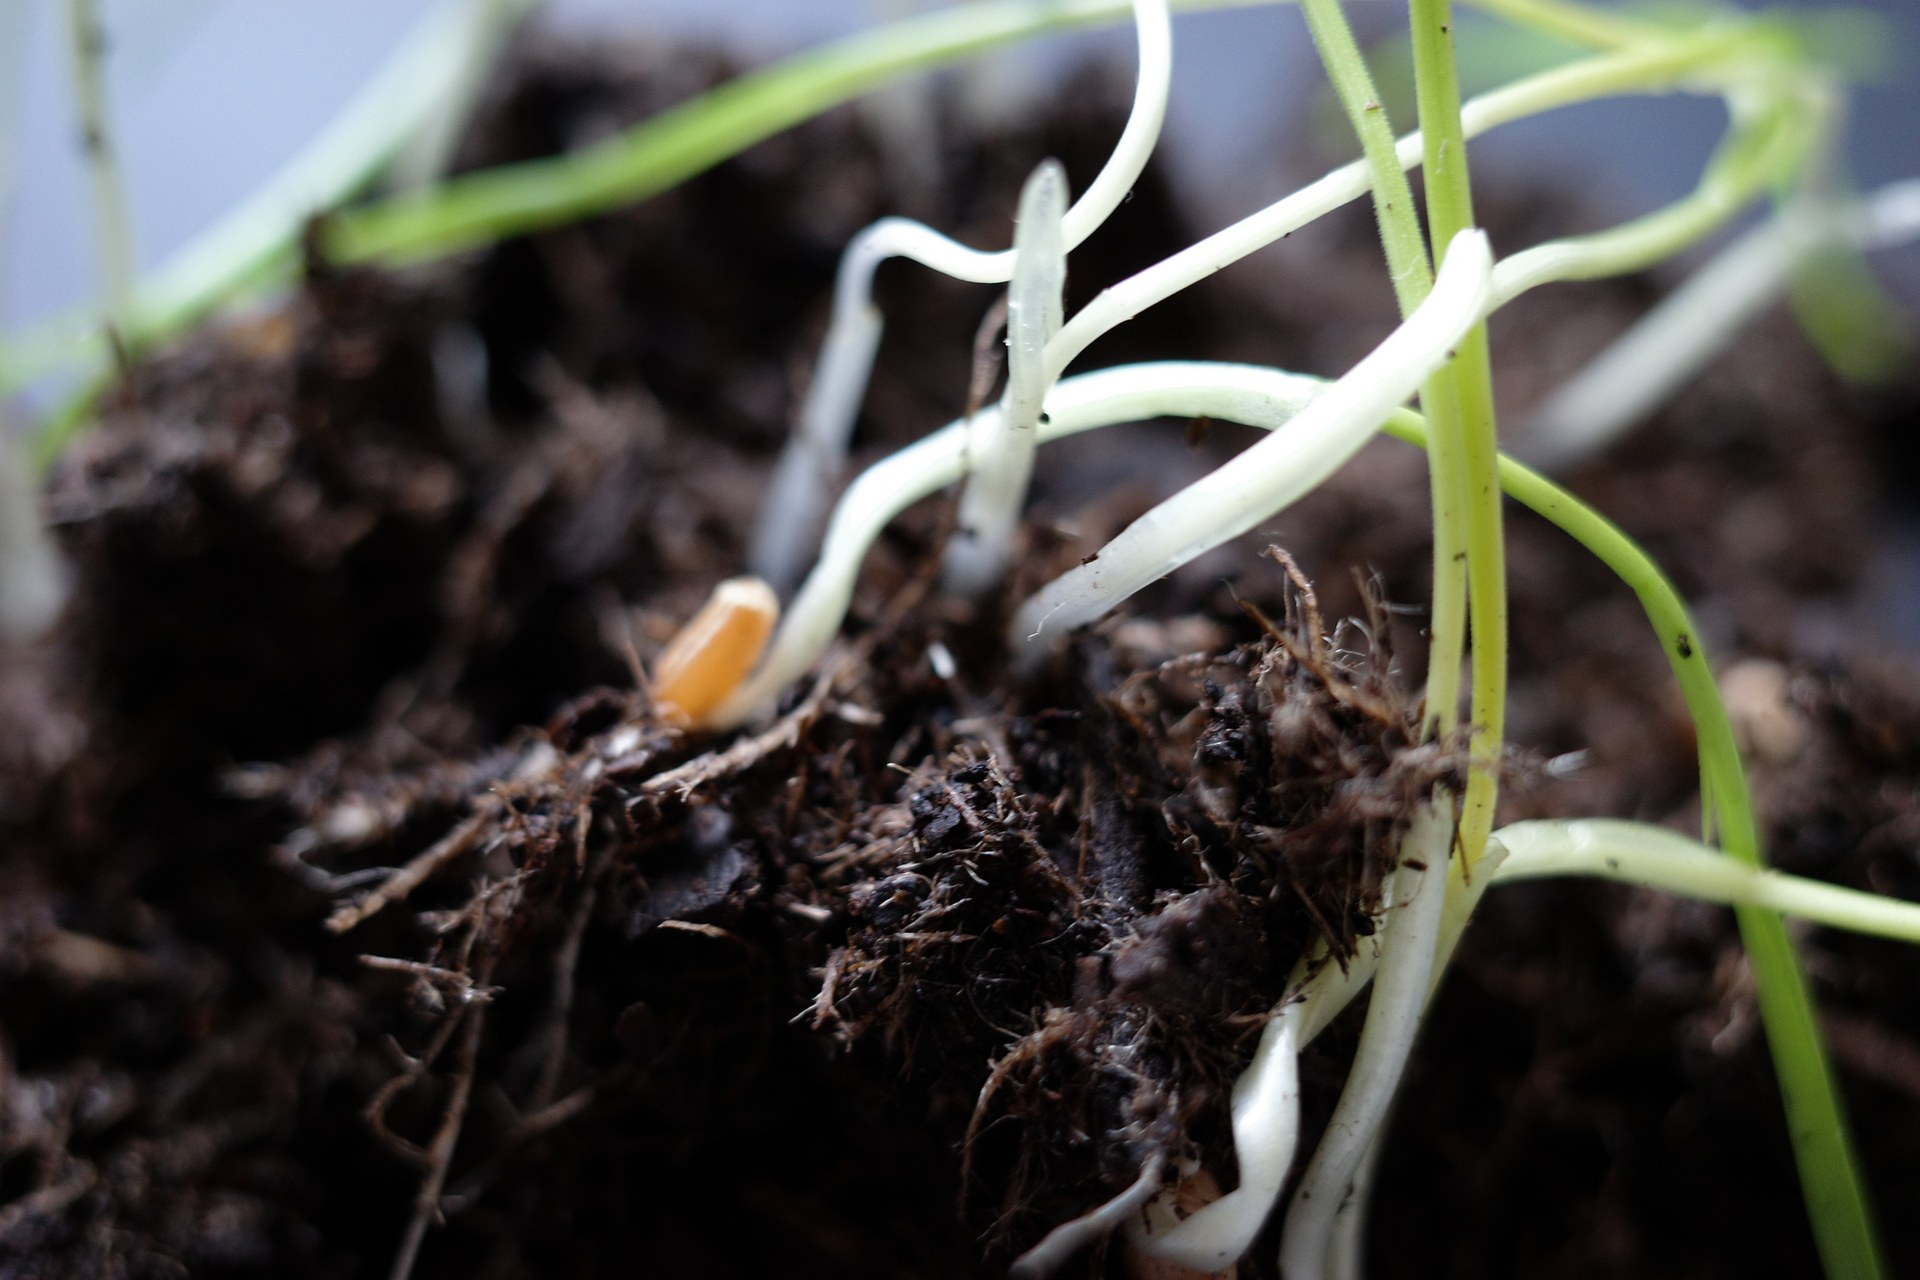 Detail of sprouting wheat seeds